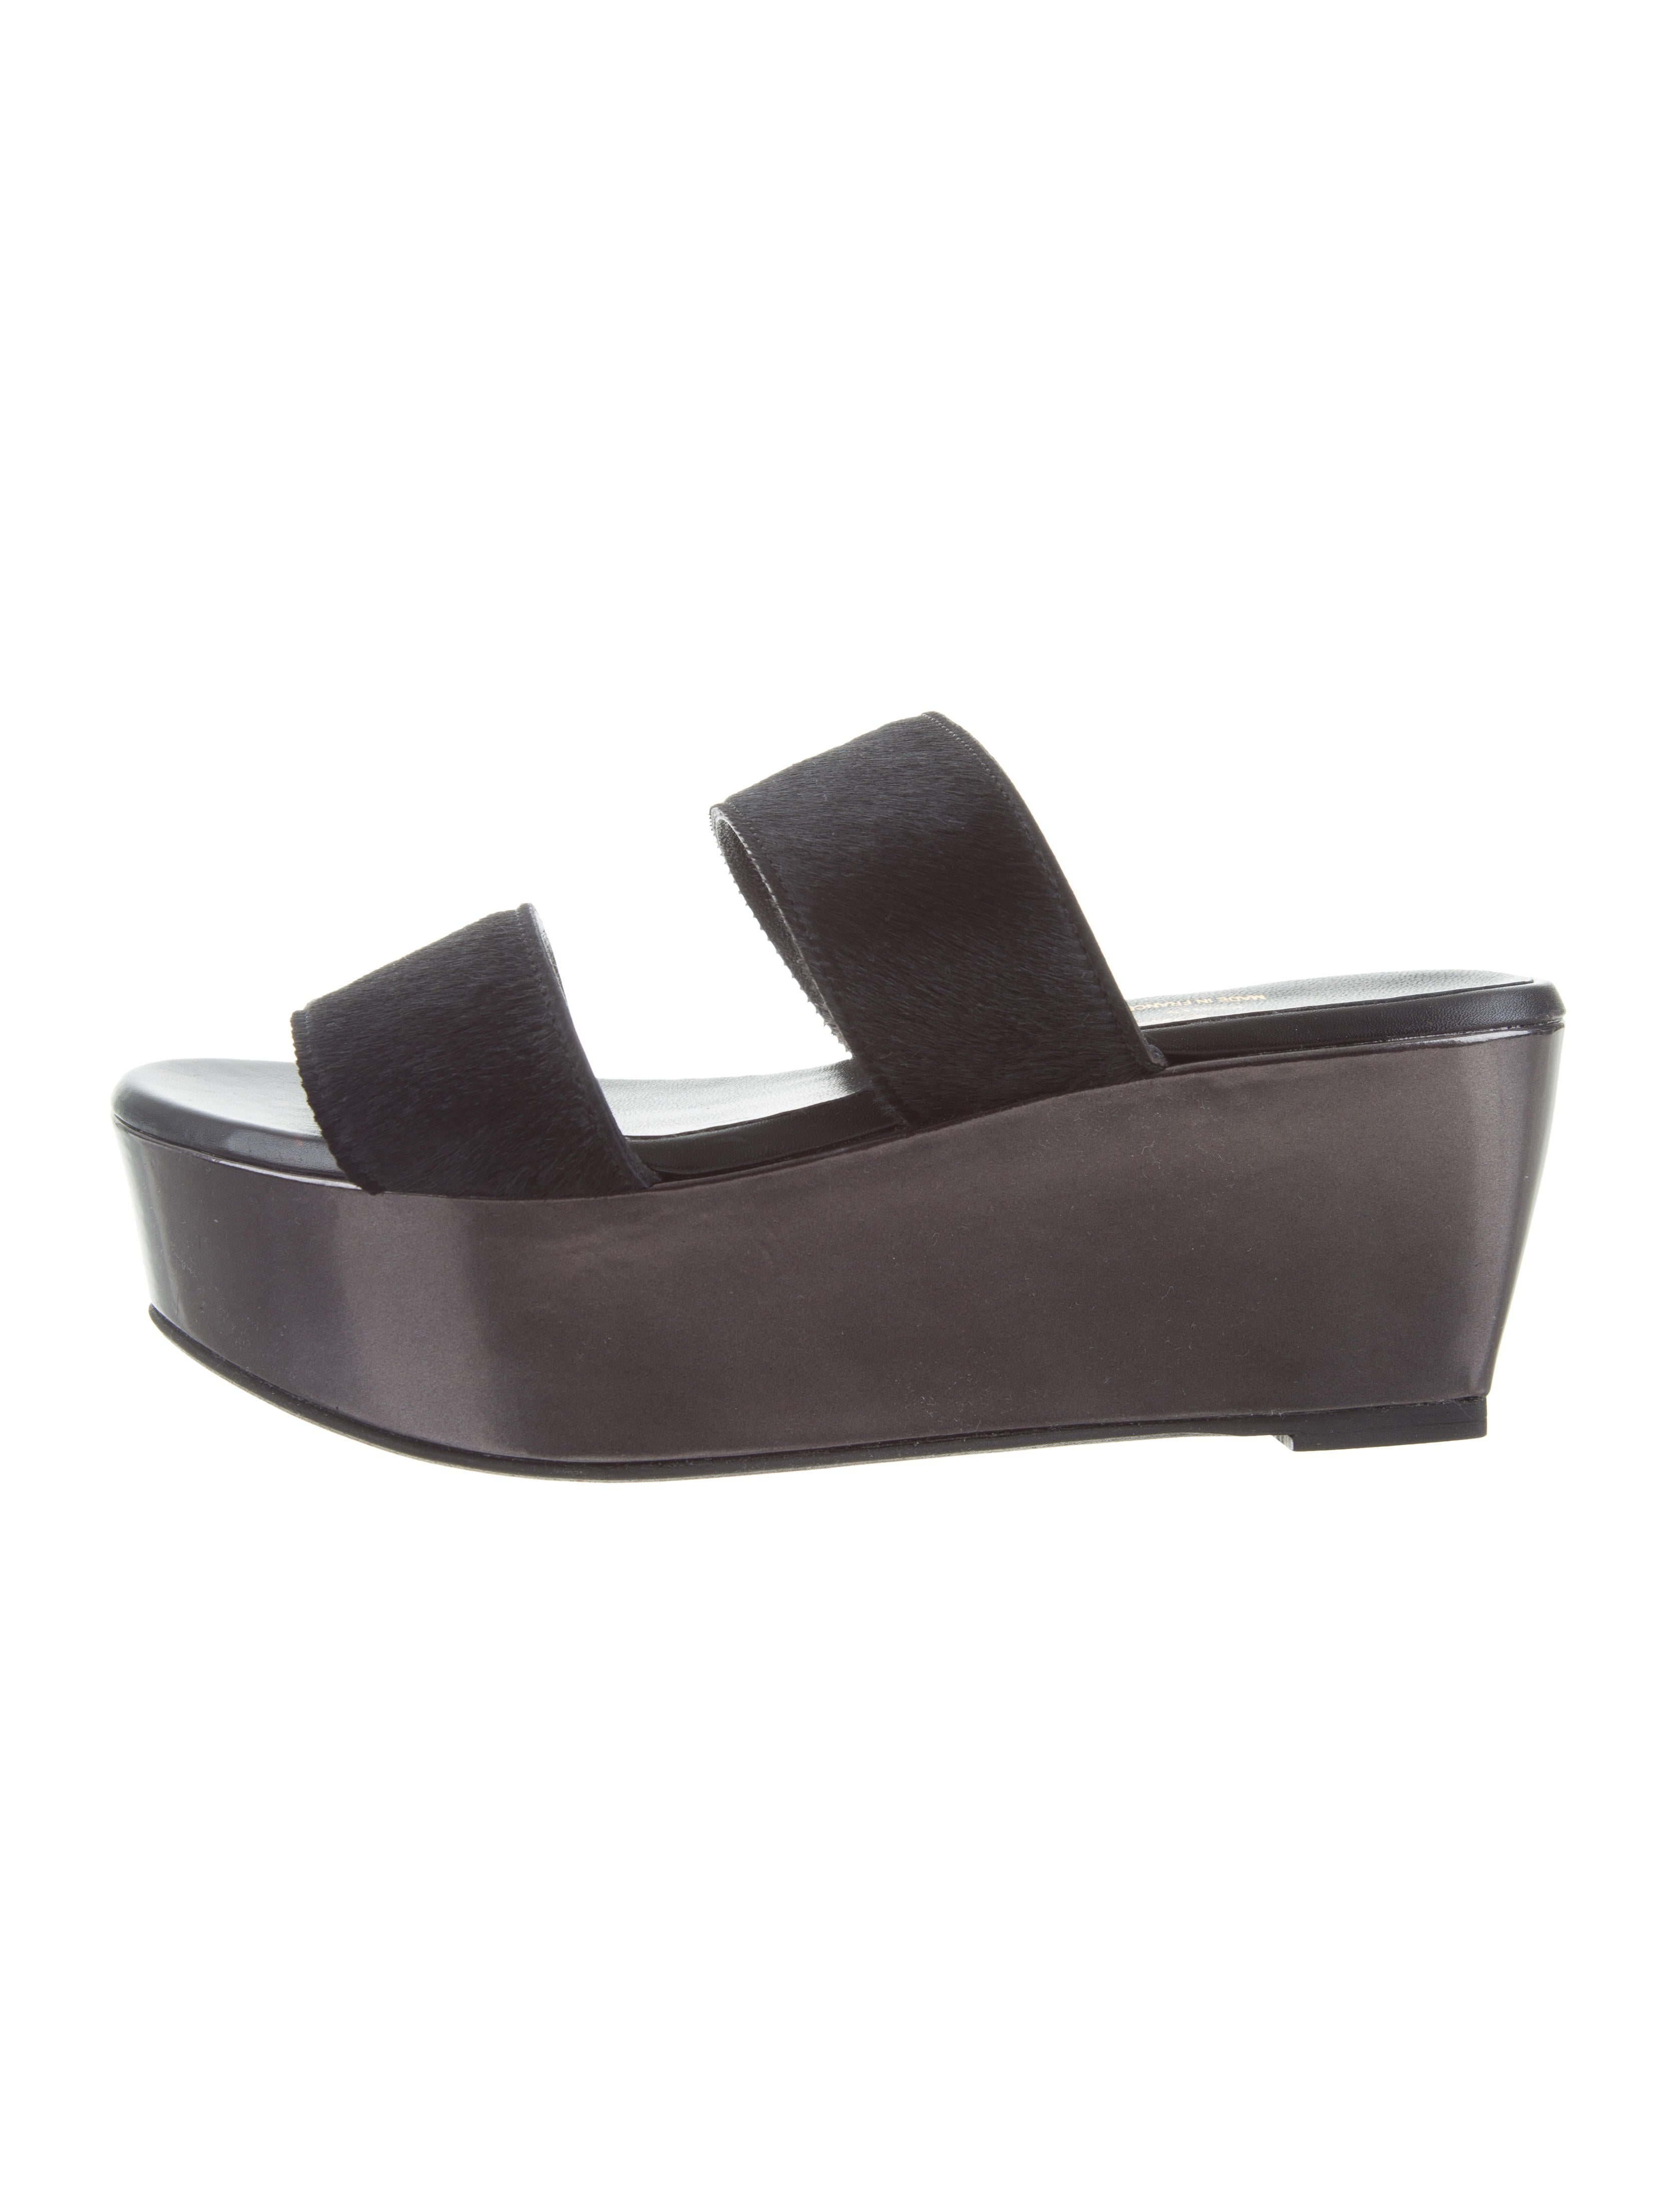 discount latest collections Robert Clergerie Ponyhair Slide Sandals websites online sale for cheap cheap price store supply cheap price wGkhe5PE